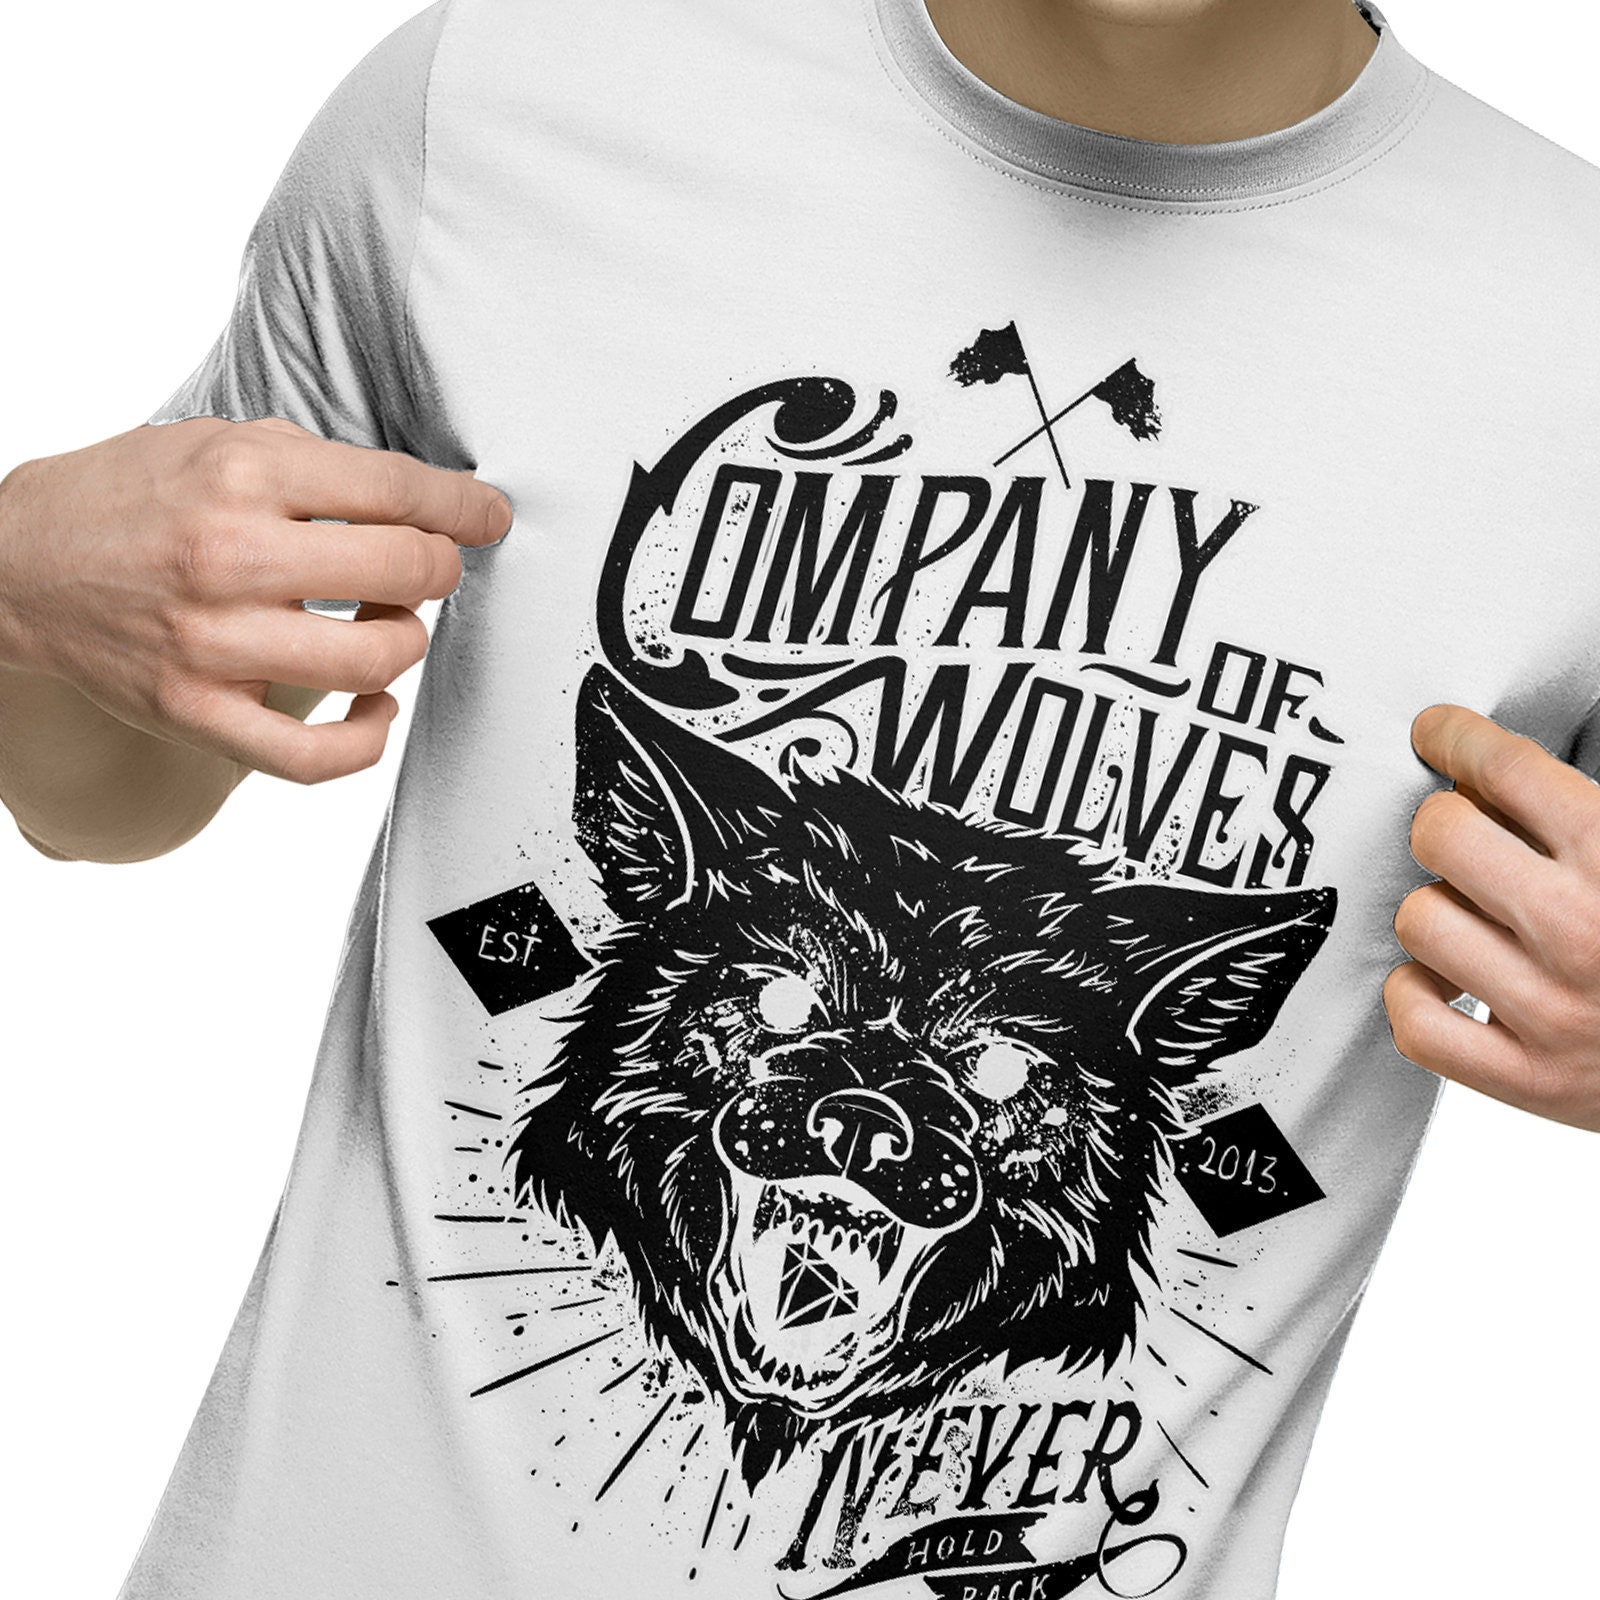 Company of Wolves T Shirt, Animal T Shirt , Wolf, Wildlife, Mens Fashion T Shirt, Hipster, Motorcycle Biker White T Shirt A17